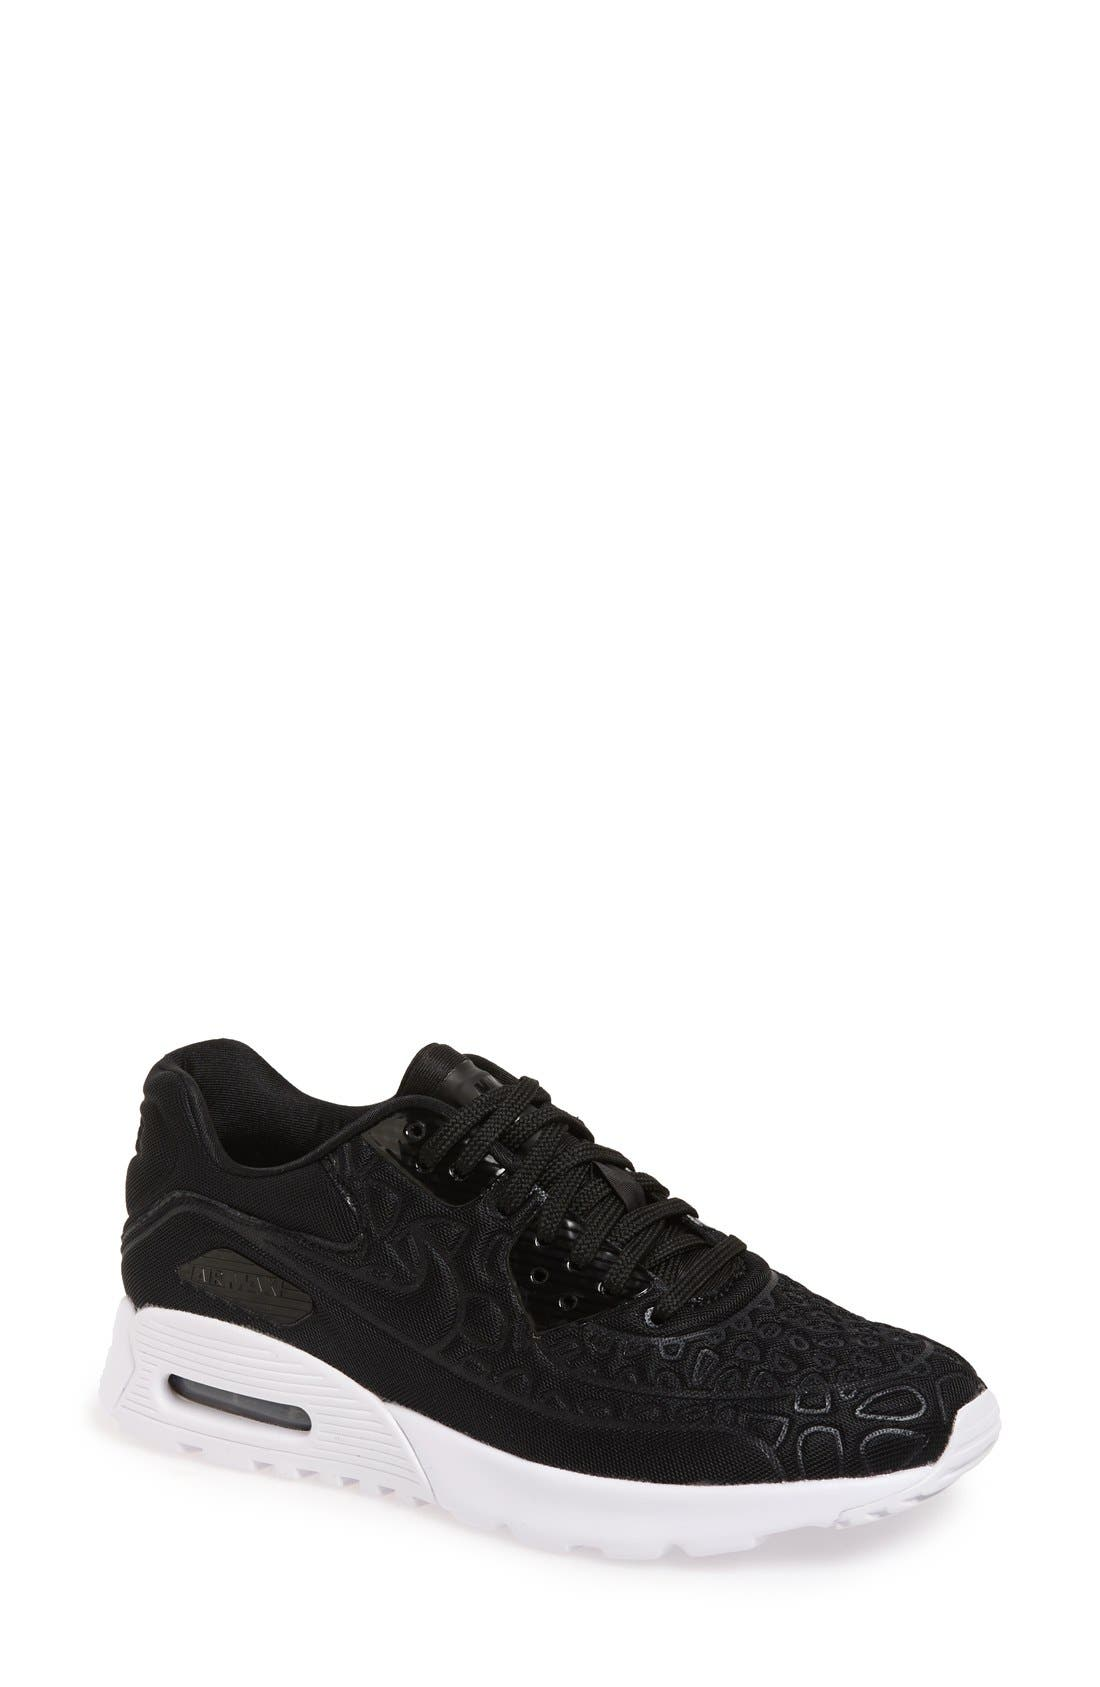 NIKE 'Air Max 90 Ultra Plush' Sneaker, Main, color, 001